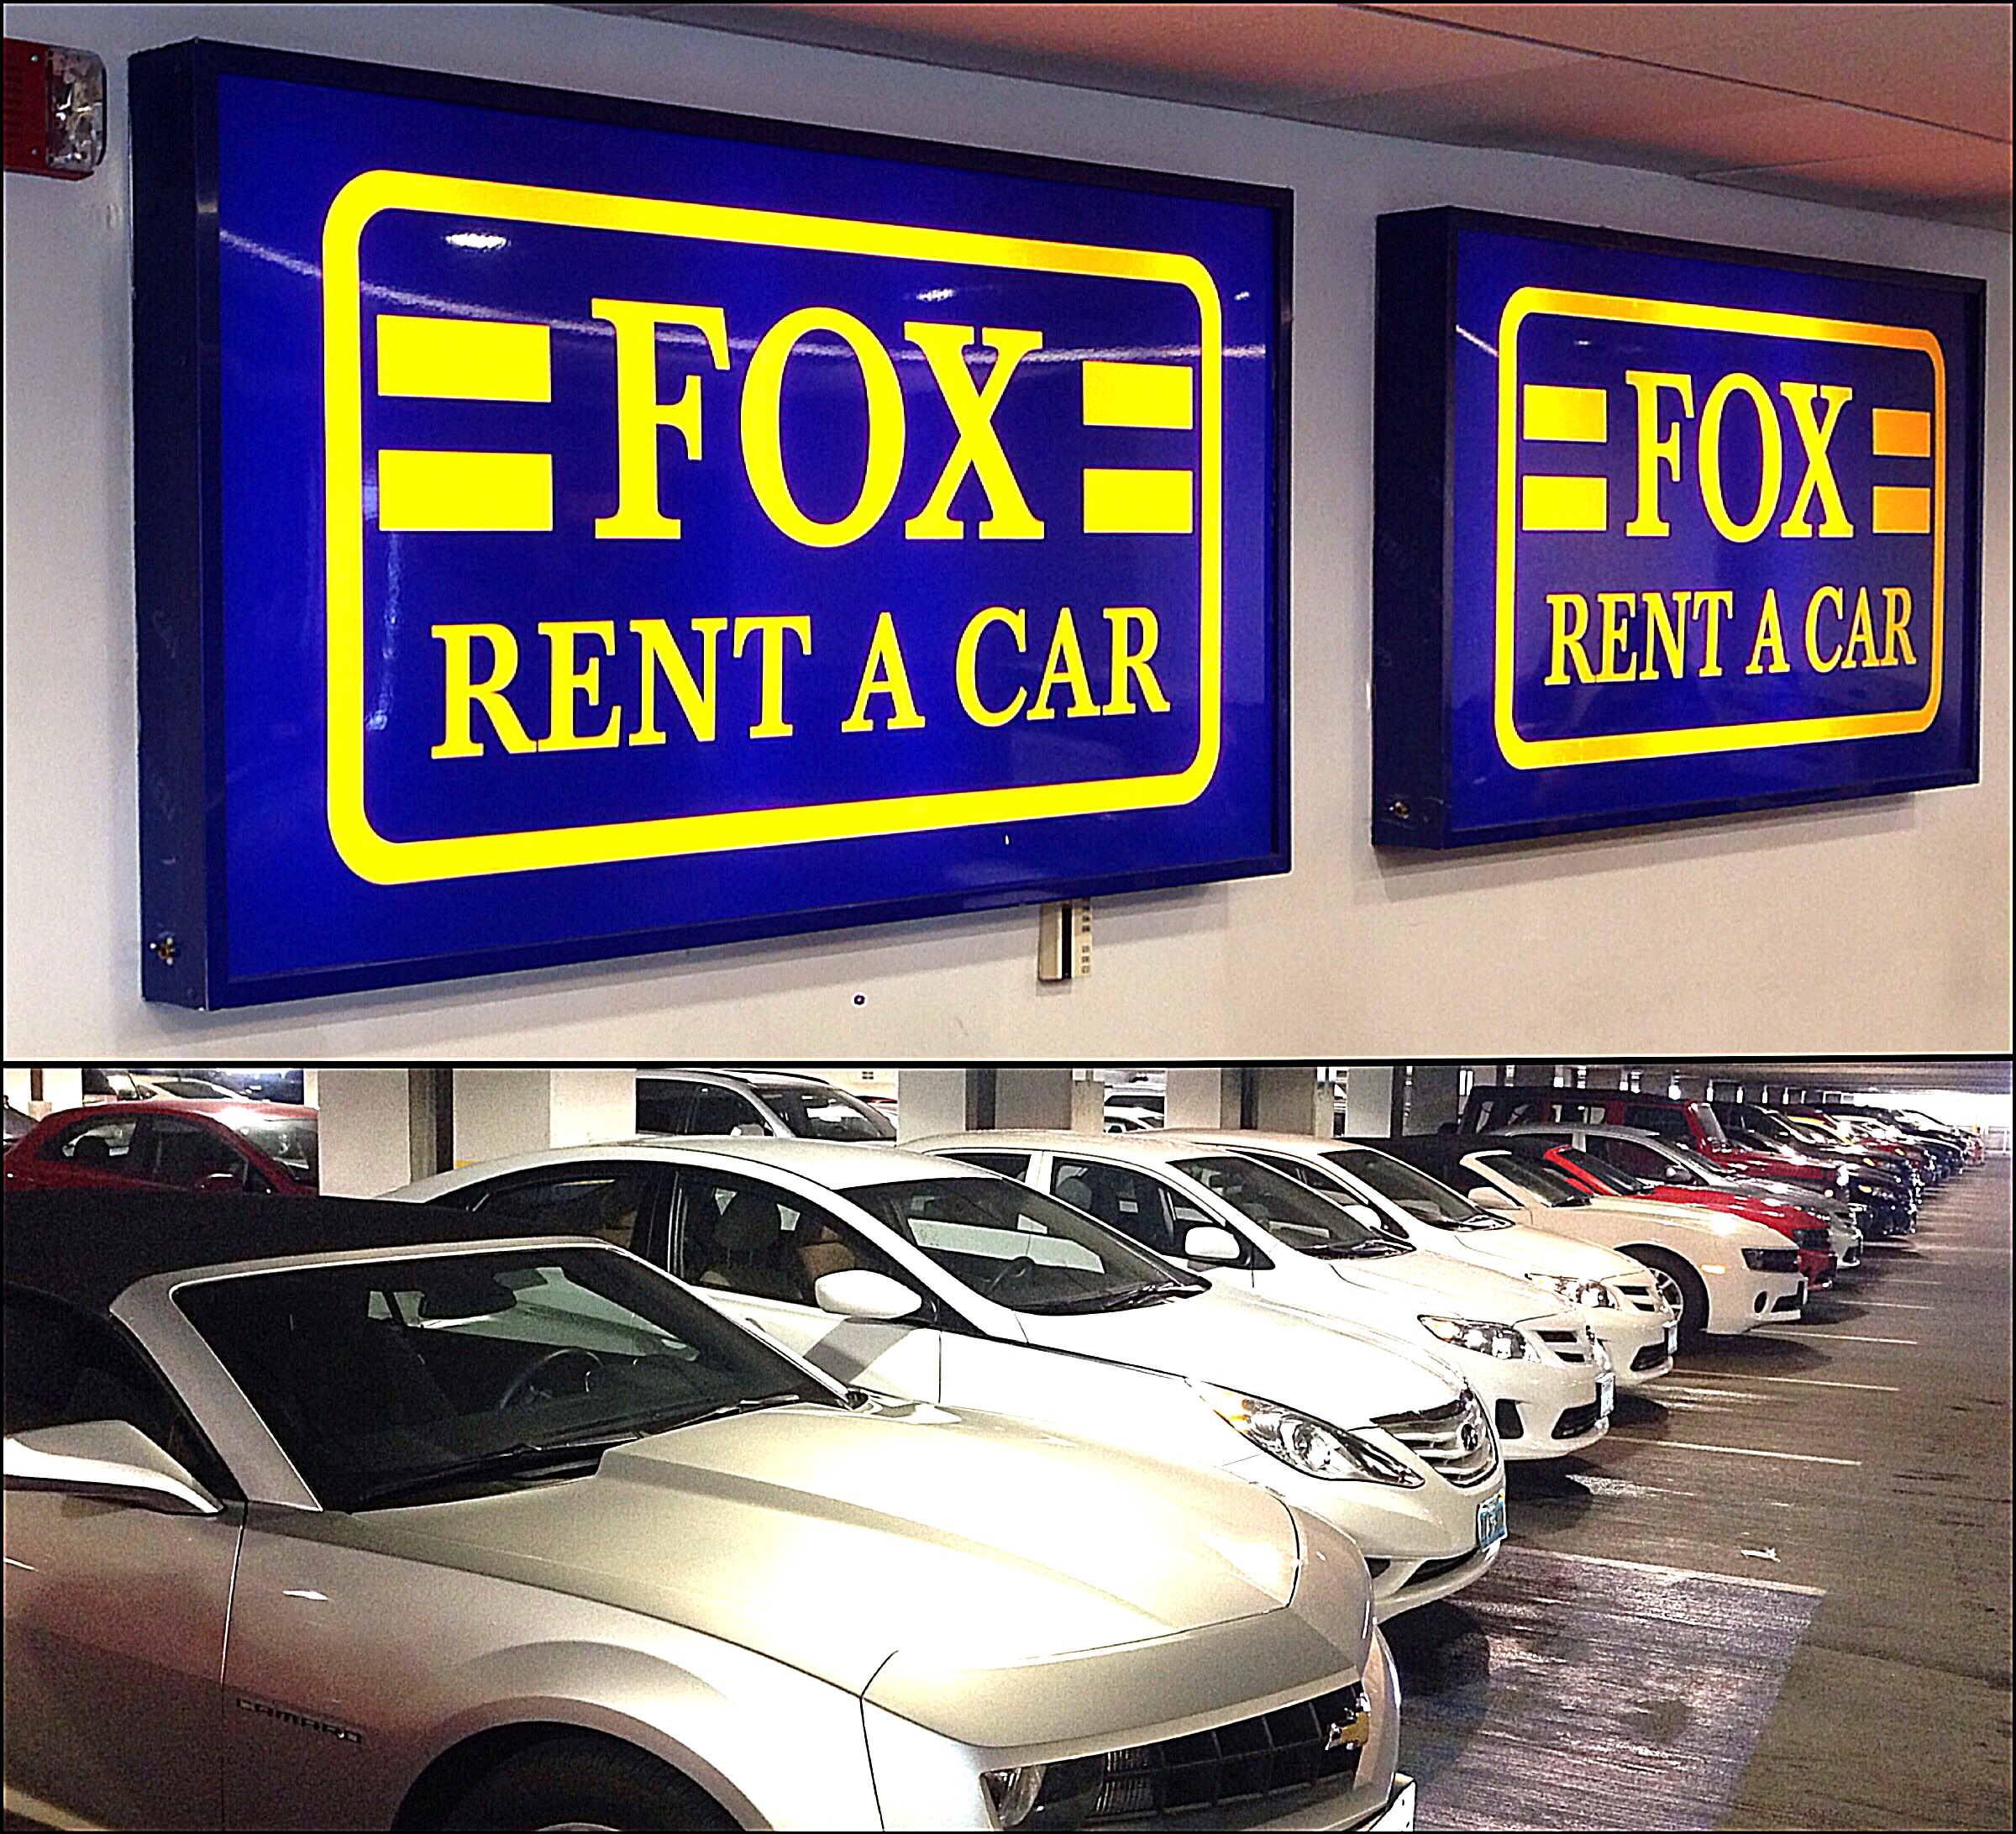 Fox Rental Cars strives to offer the best discount rates across all its cars, making Limited Time Offers · Member Exclusive Deals · 24/7 Customer Support · Fast & Secure BookingShop travel: Cars, Vacation Rentals, Bundle and Save, Cruises, Deals, Discover and more.